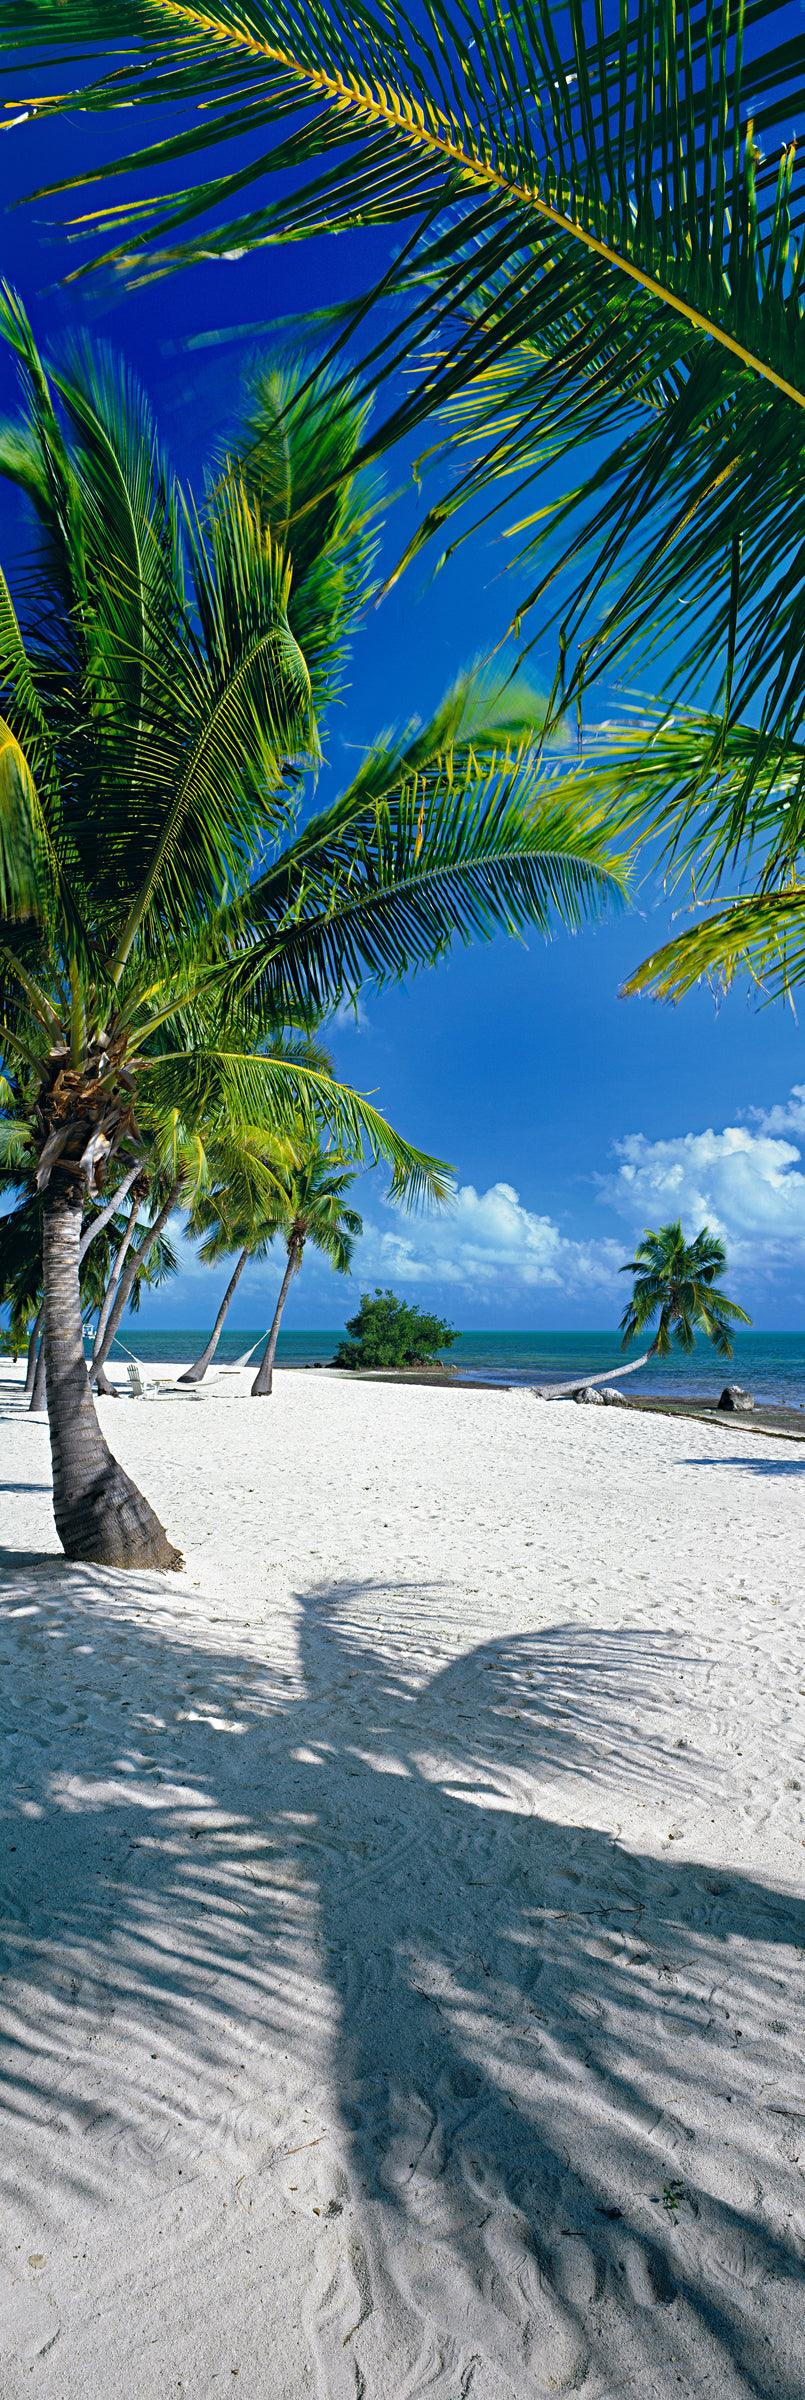 Palm trees swaying on the white sand beaches of Islamorada Florida